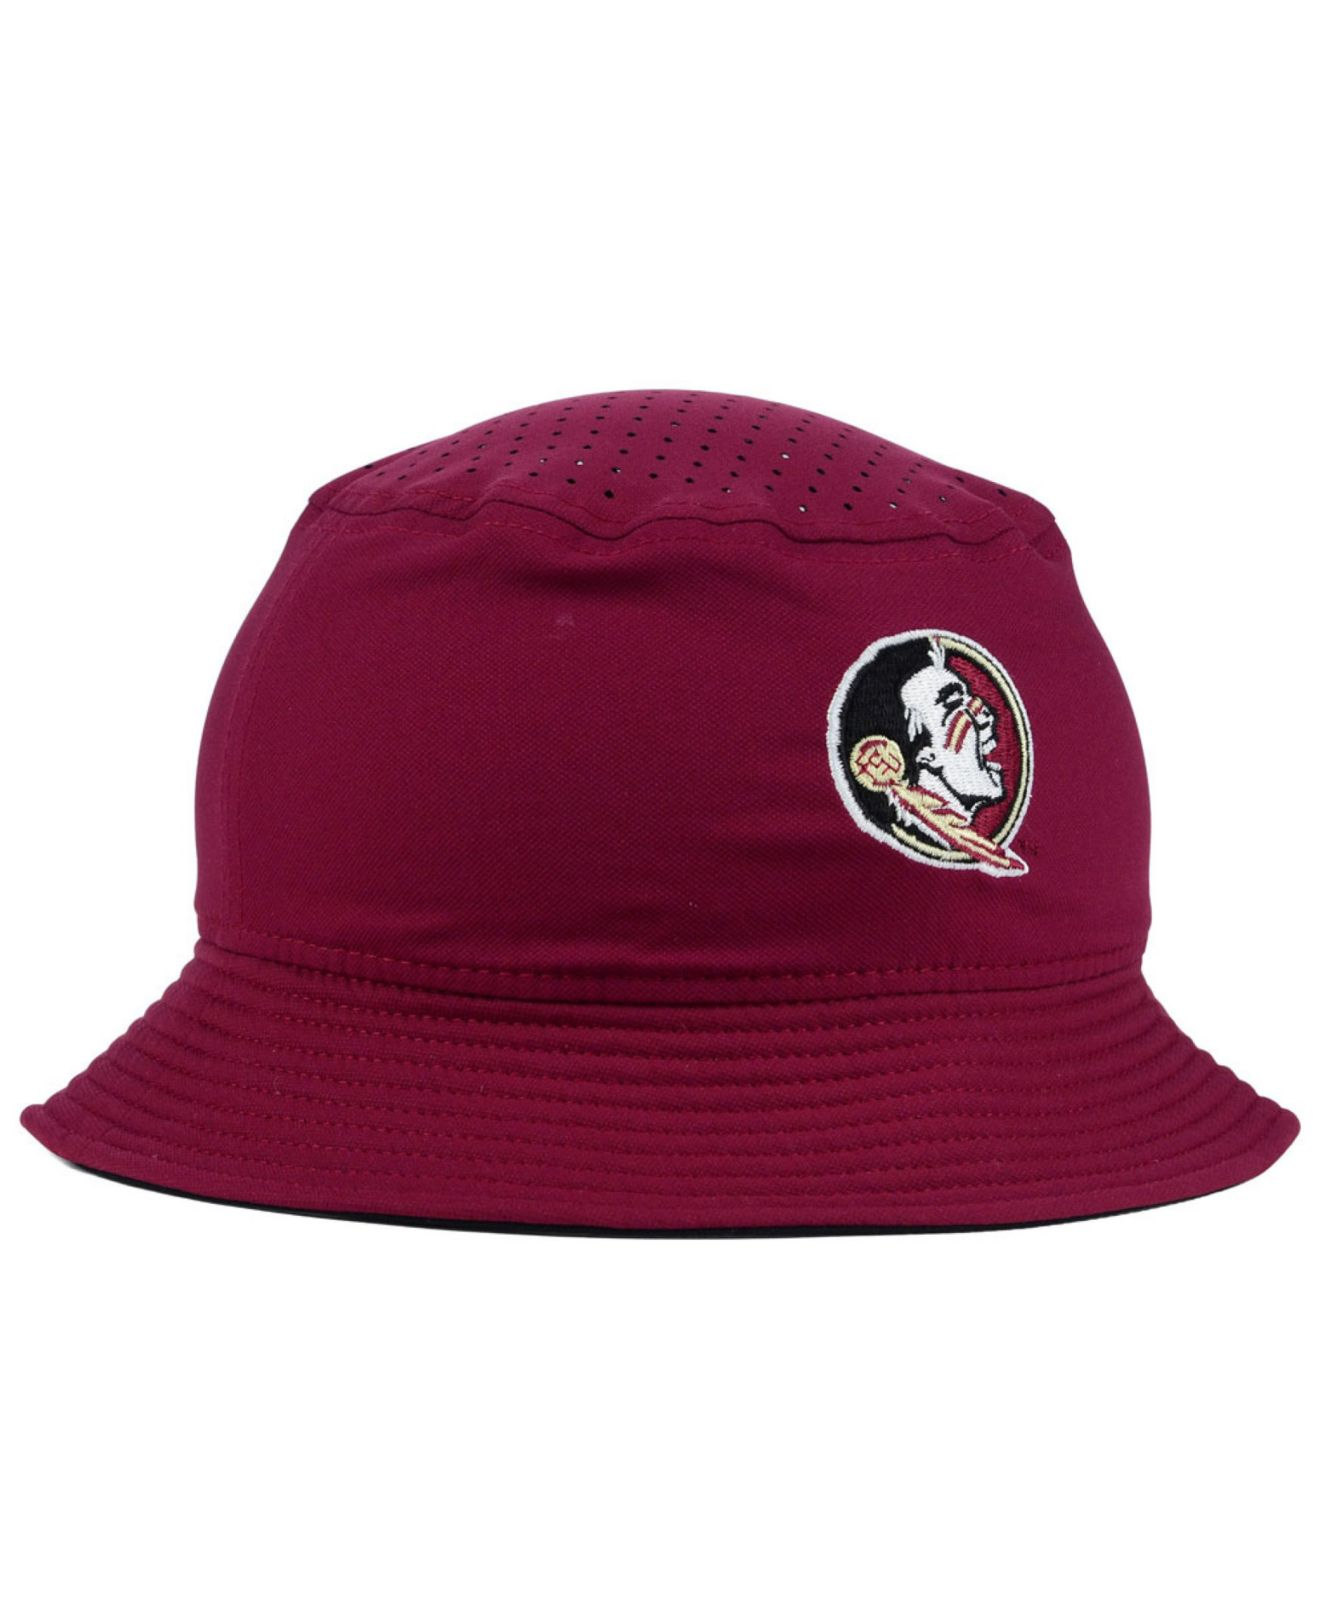 4e1845f031e ... discount lyst nike florida state seminoles vapor bucket hat in red for  men 711ca ac6f6